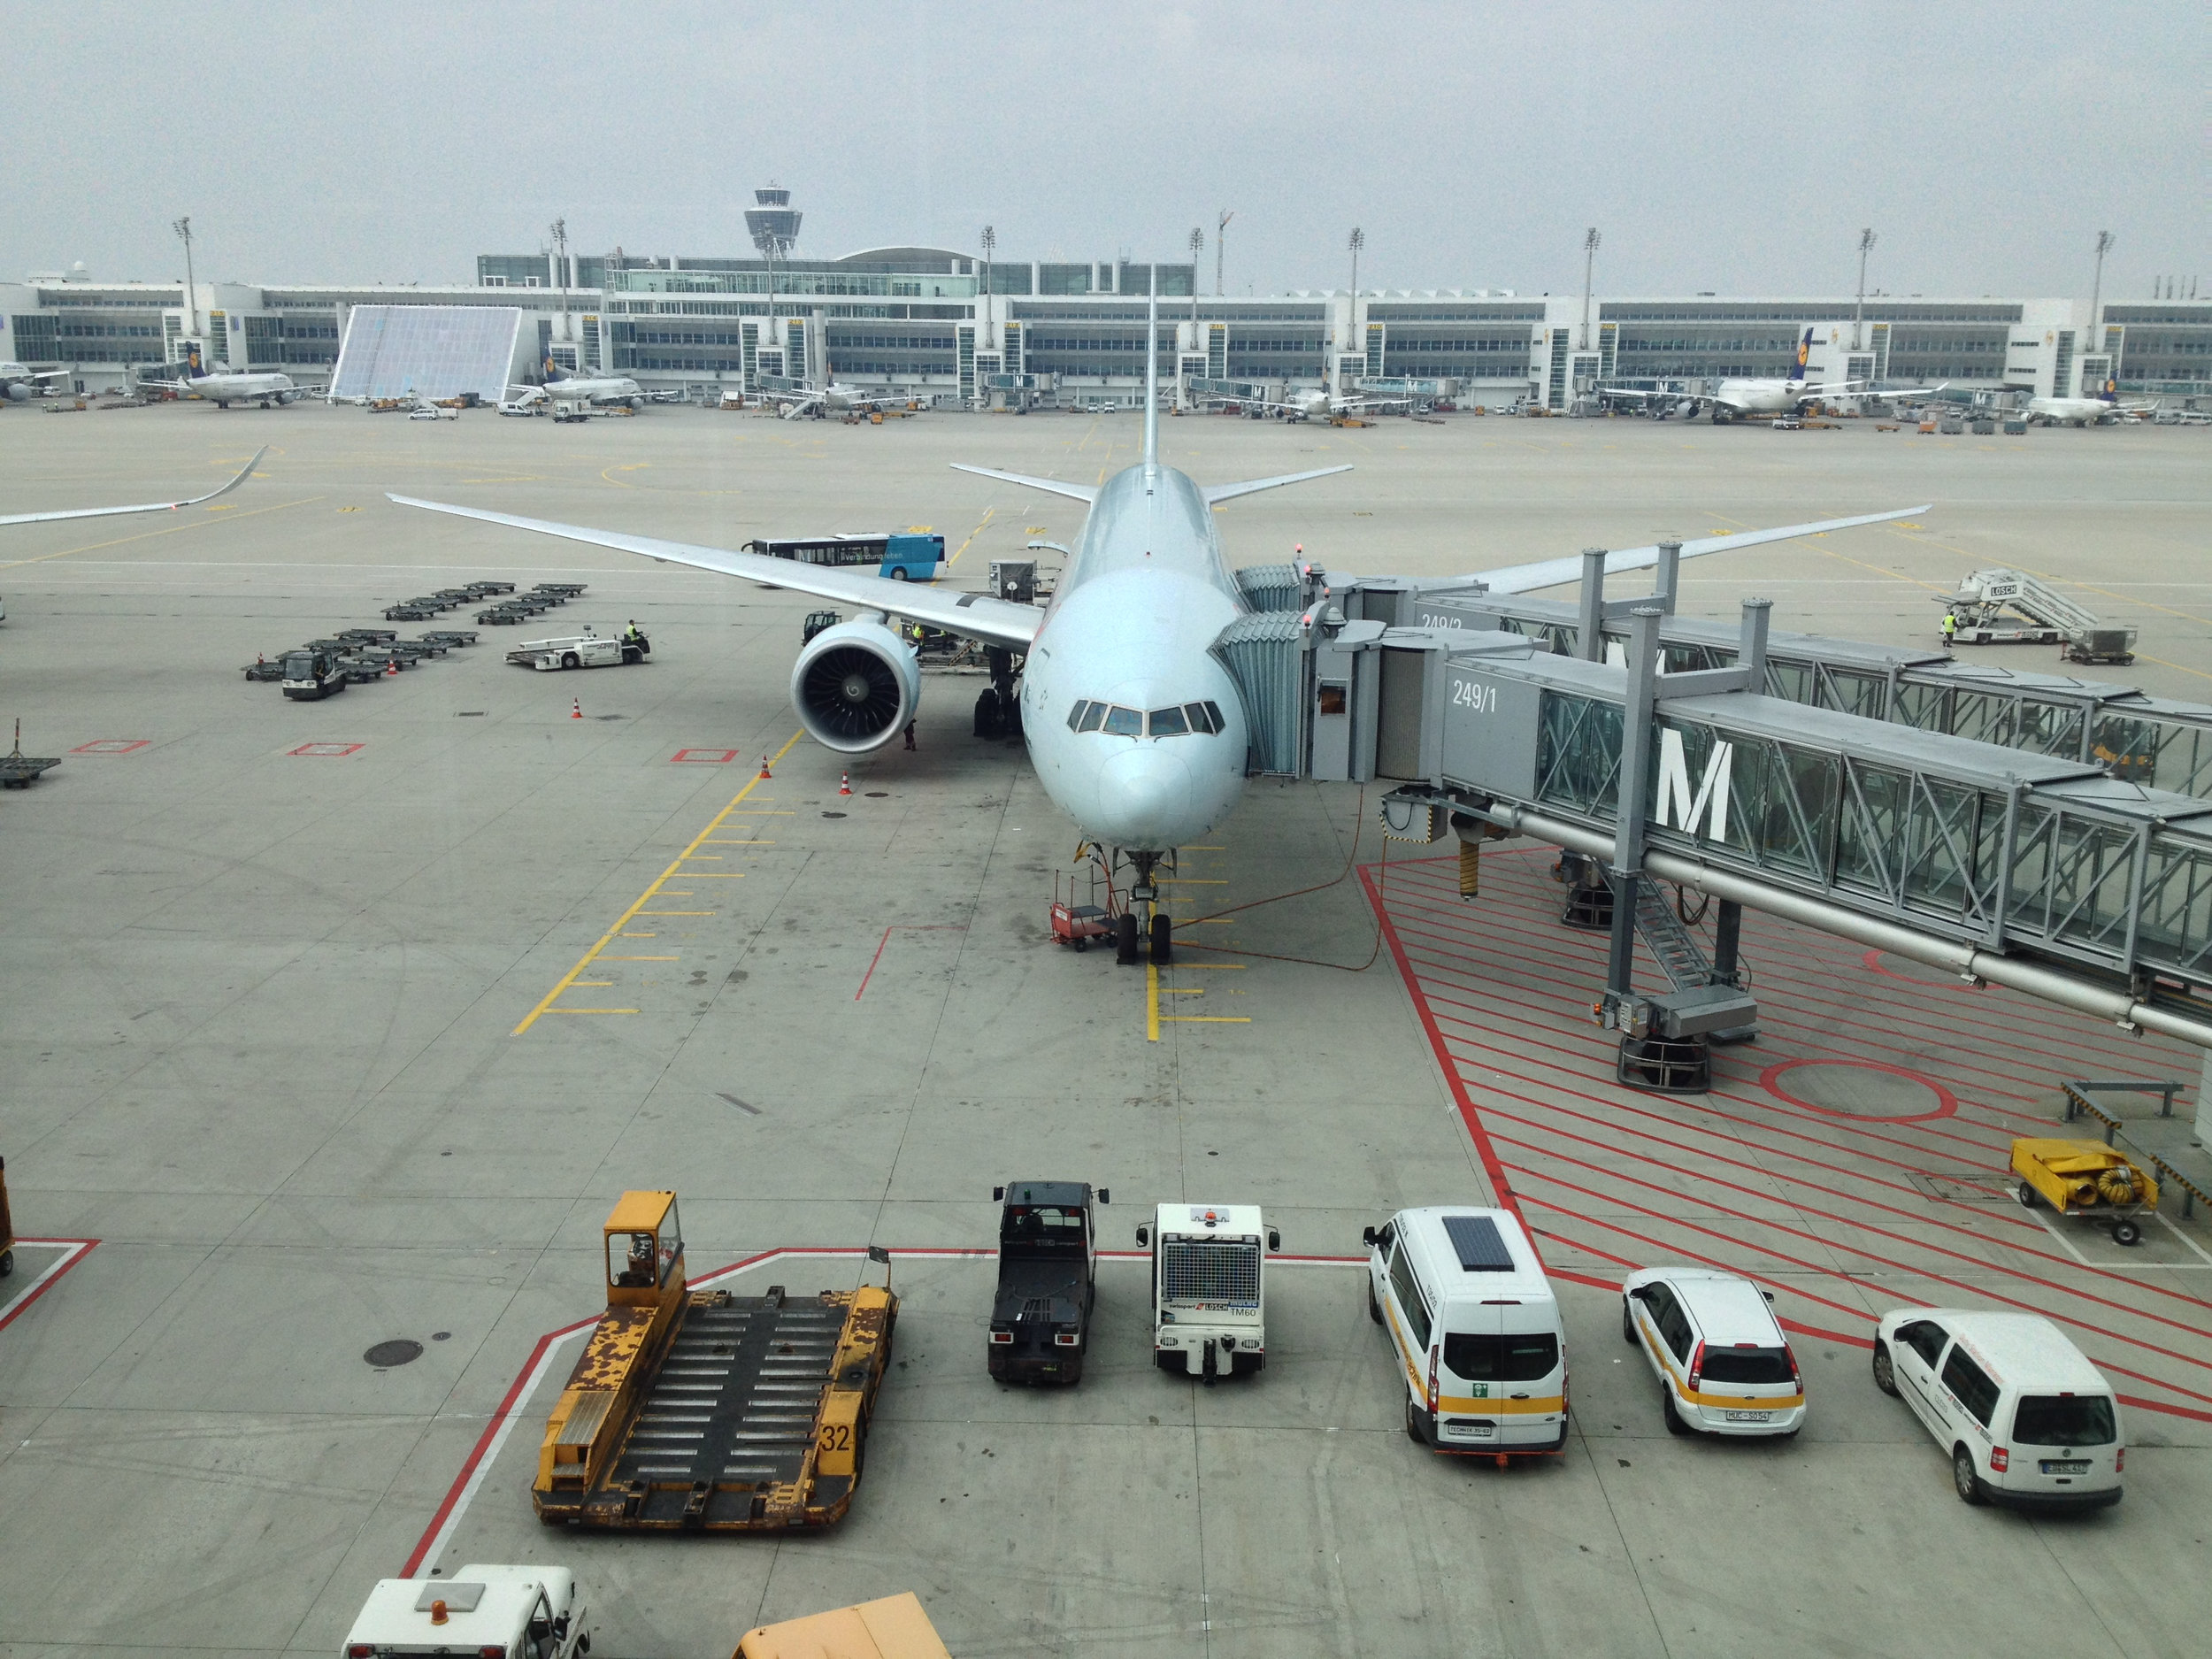 Boeing 777-300ER aircraft that we took from Toronto to Munich